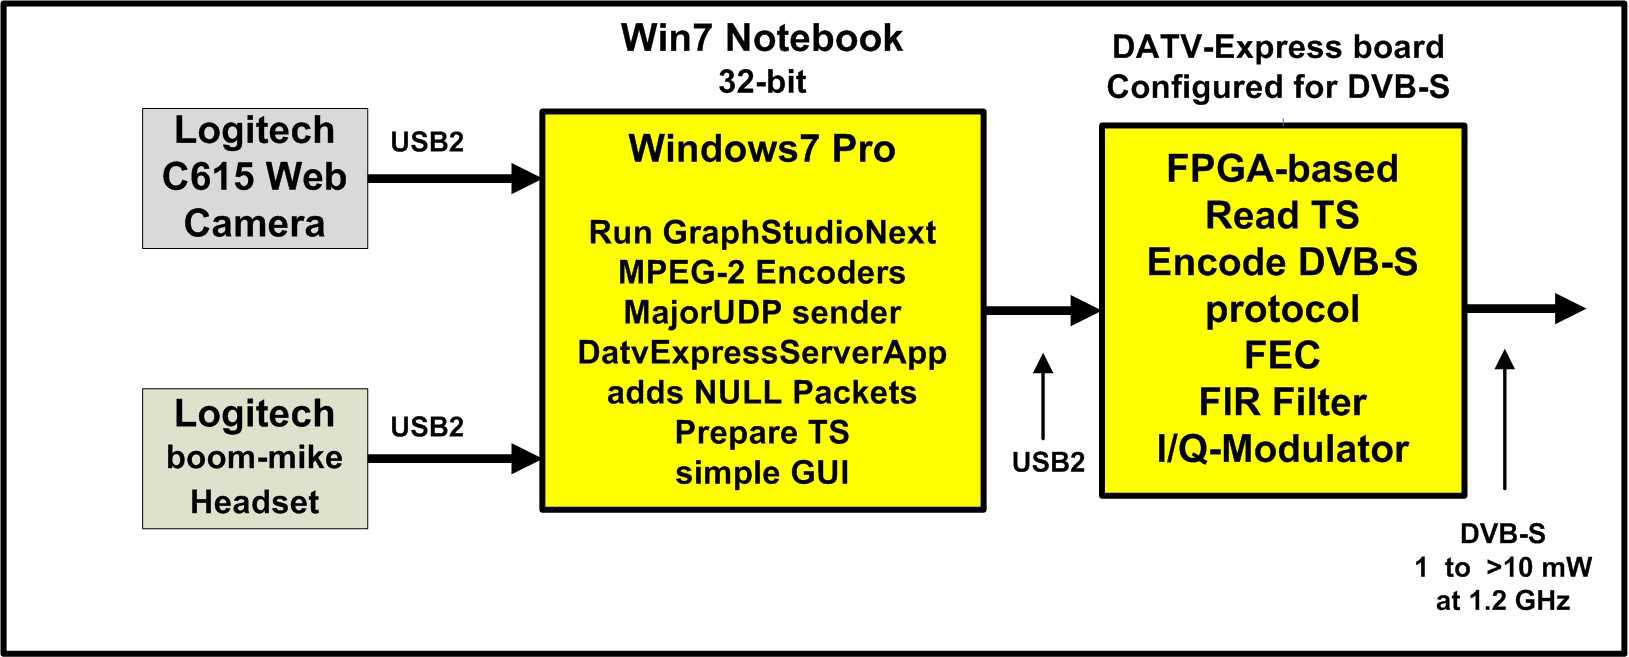 Datv Express Project July Update Report Batc Forum Mpeg 1 Block Diagram The Board To Be Connected Directly A Windows Computer Running Win7 Or Win81 Figure 5 Shows For My Testing Set Up